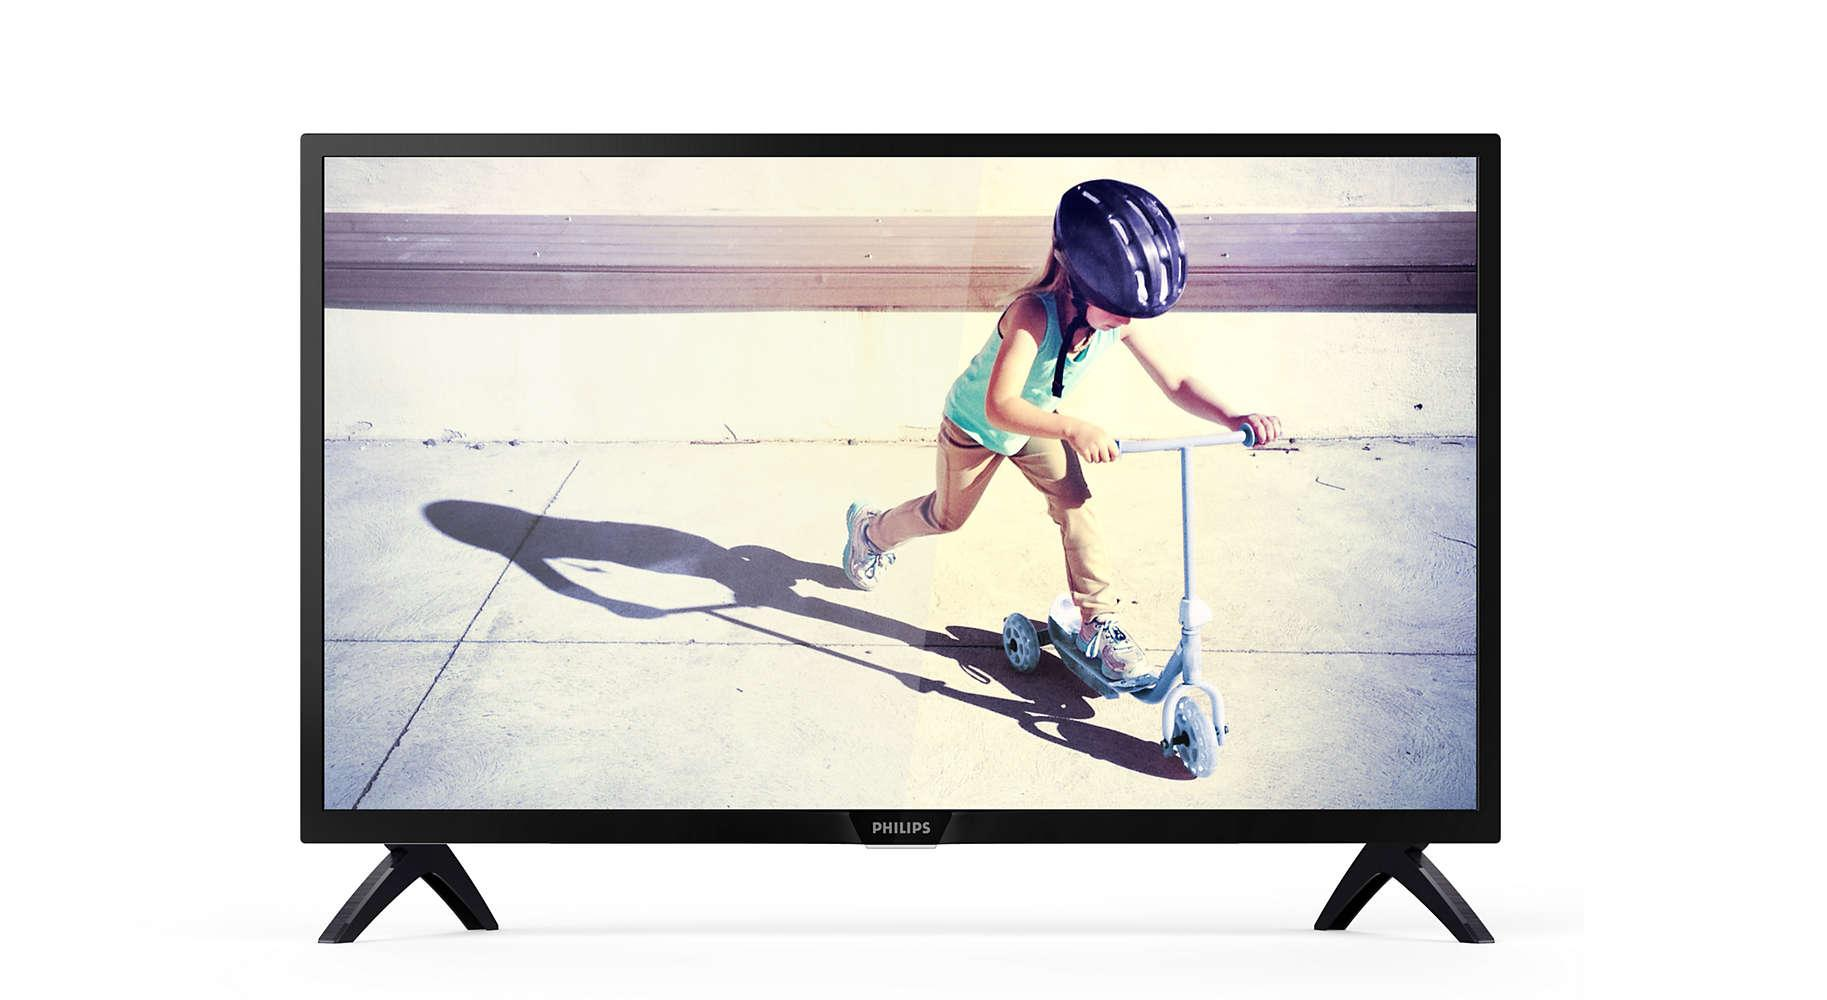 Discounted Philips 43Pft5102 43 Full Hd Ultra Slim Led Smart Tv W Pixel Plus Hd 2 X Hdmi 2 X Usb Inputs